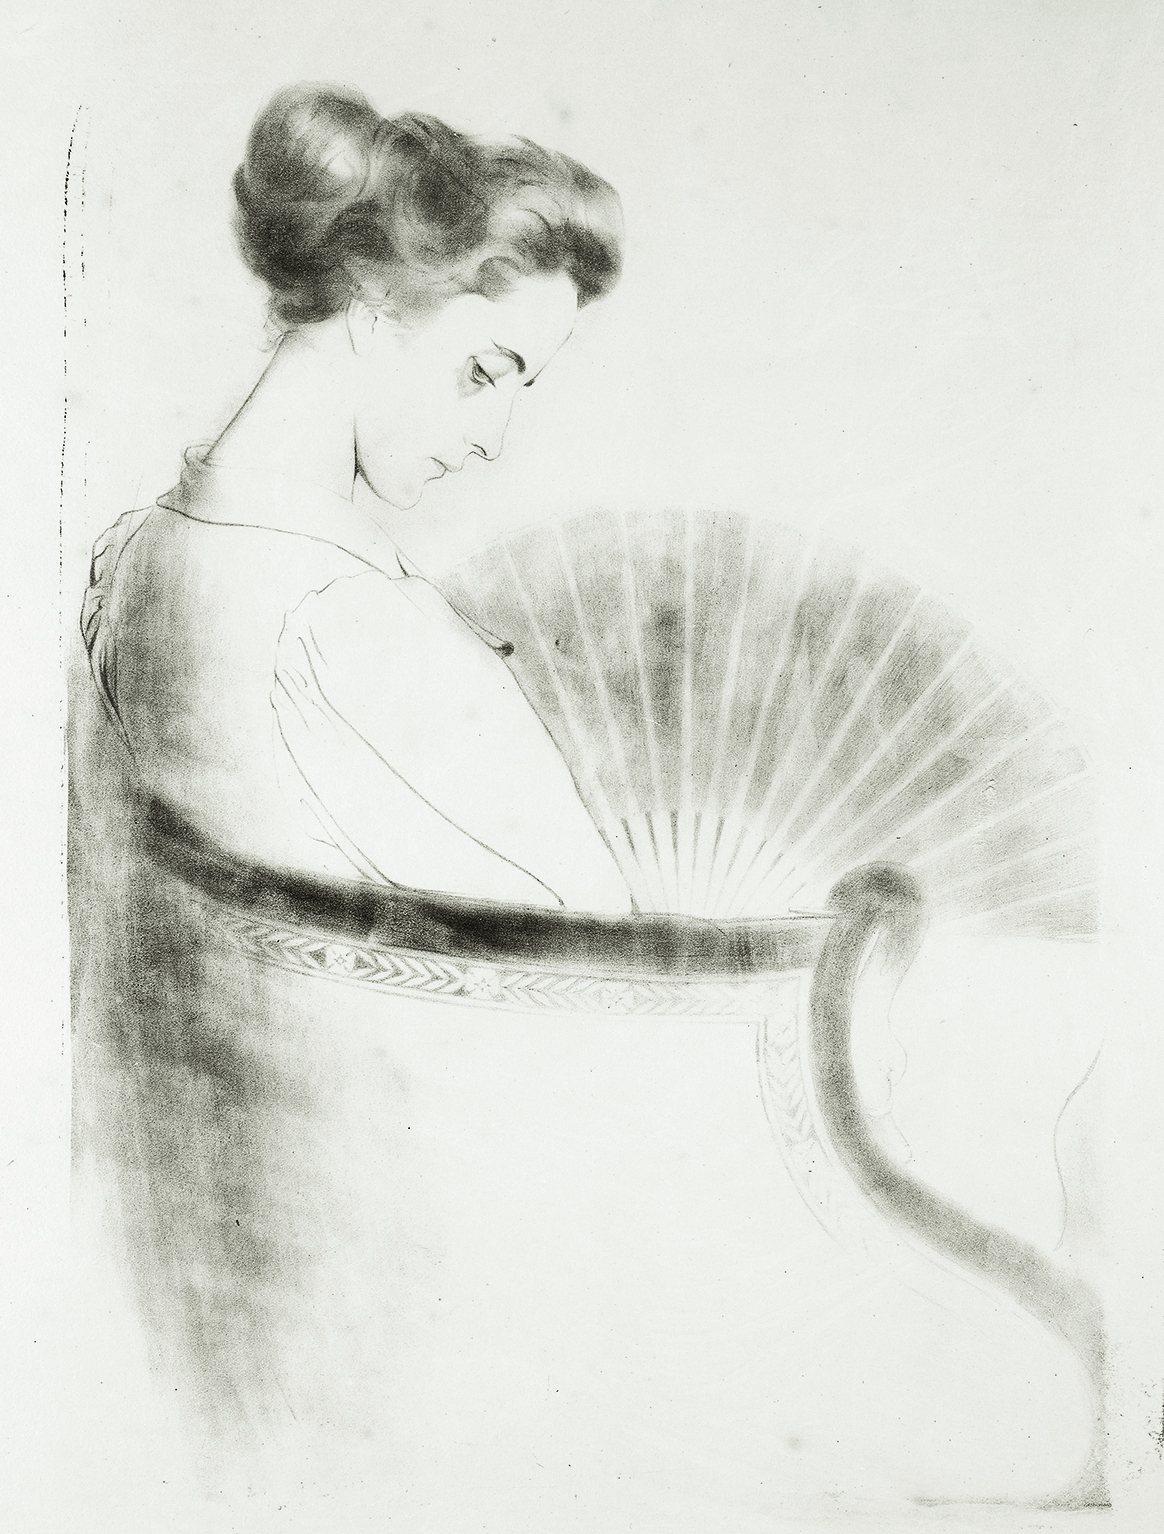 Antonio de La Gandara - Anne-Catherine à l'éventail - 1895 - Lithographie - Collection particulière et Collection Van de Velde © Archives de l'expert